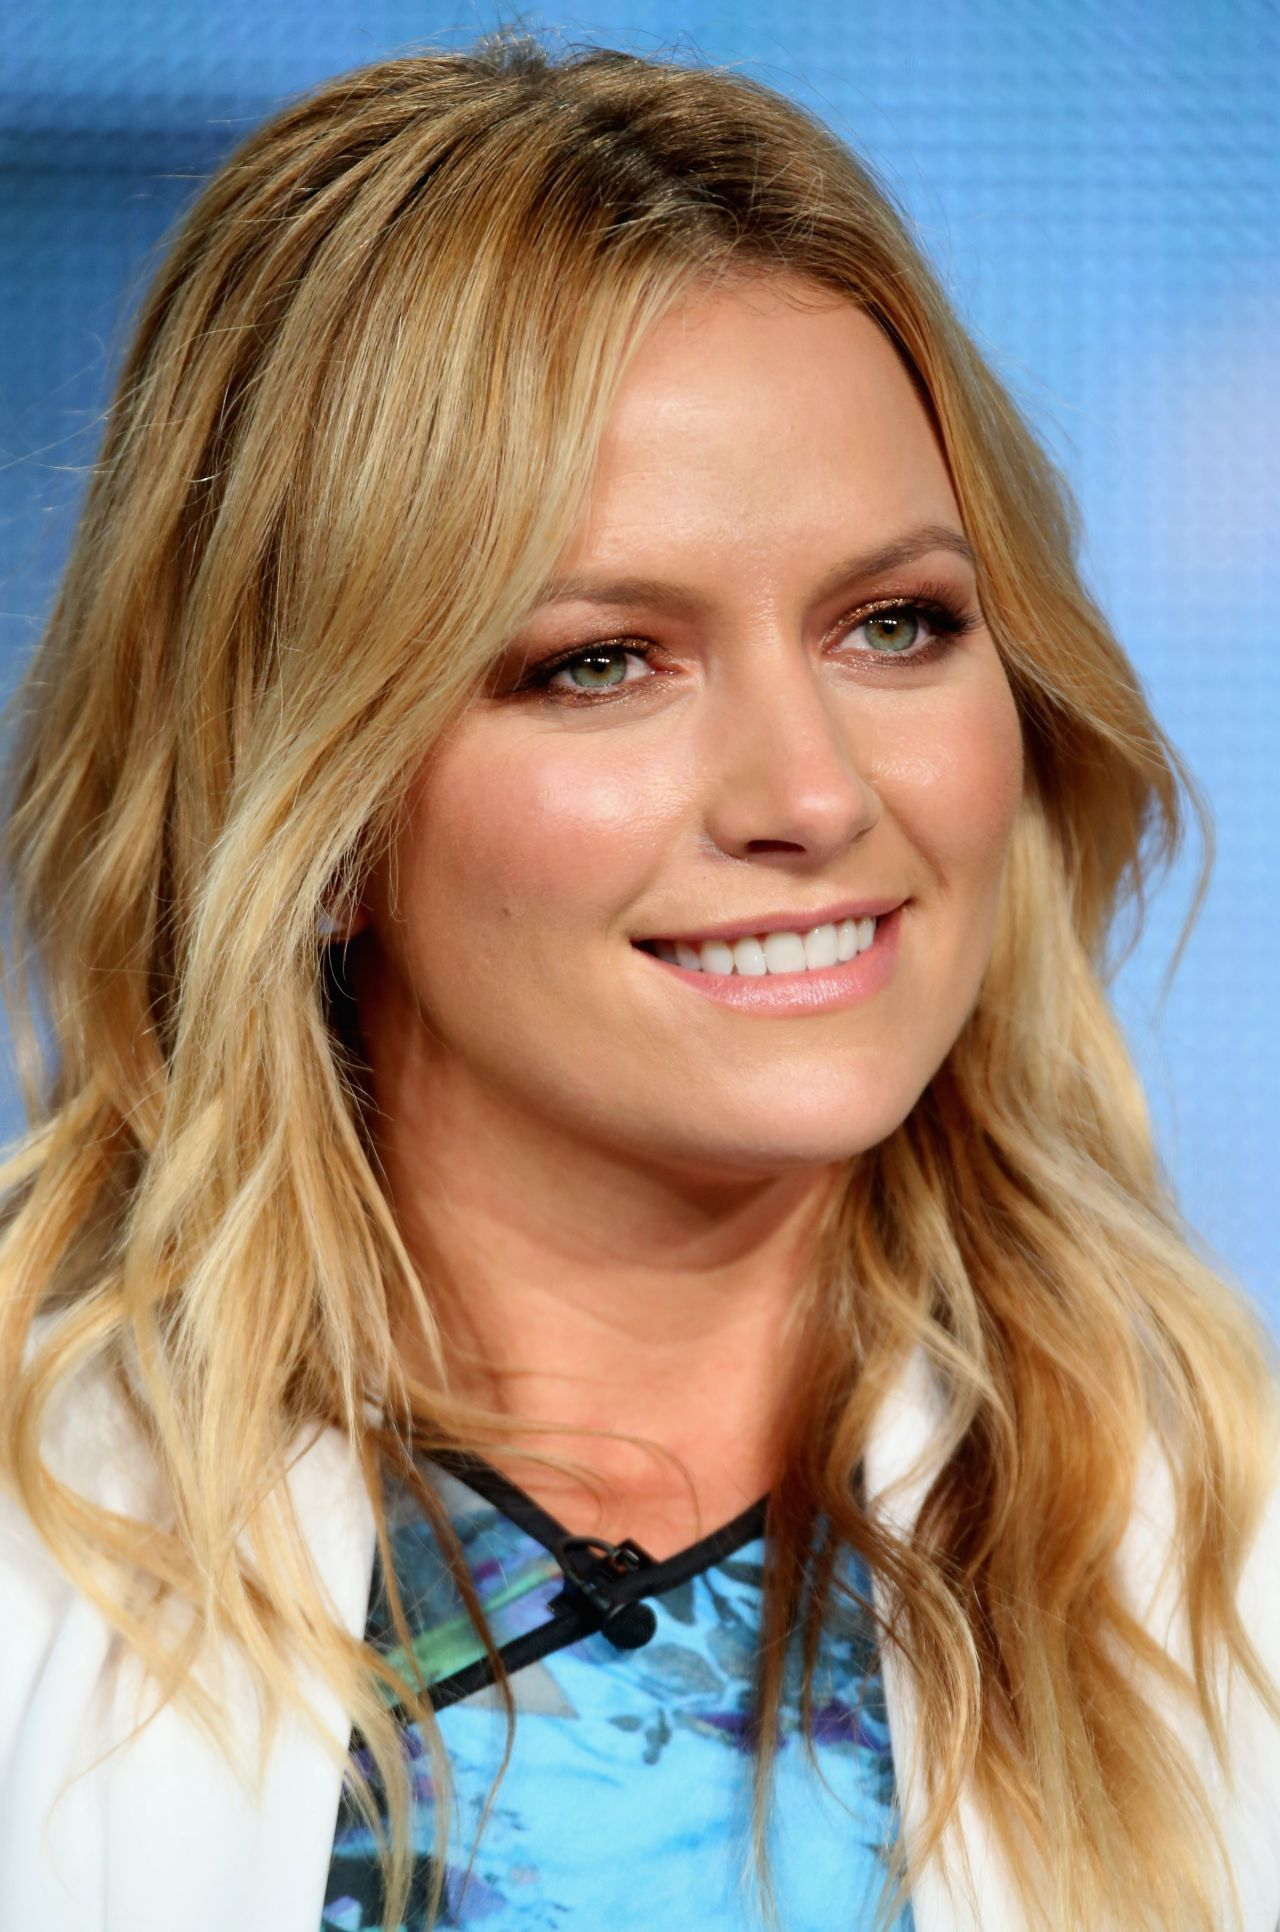 becki newton ugly bettybecki newton milkshake, becki newton instagram, becki newton ugly betty, becki newton twitter, becki newton height weight, becki newton, becki newton wikifeet, becki newton charmed, becki newton imdb, becki newton nudography, becki newton husband, becki newton net worth